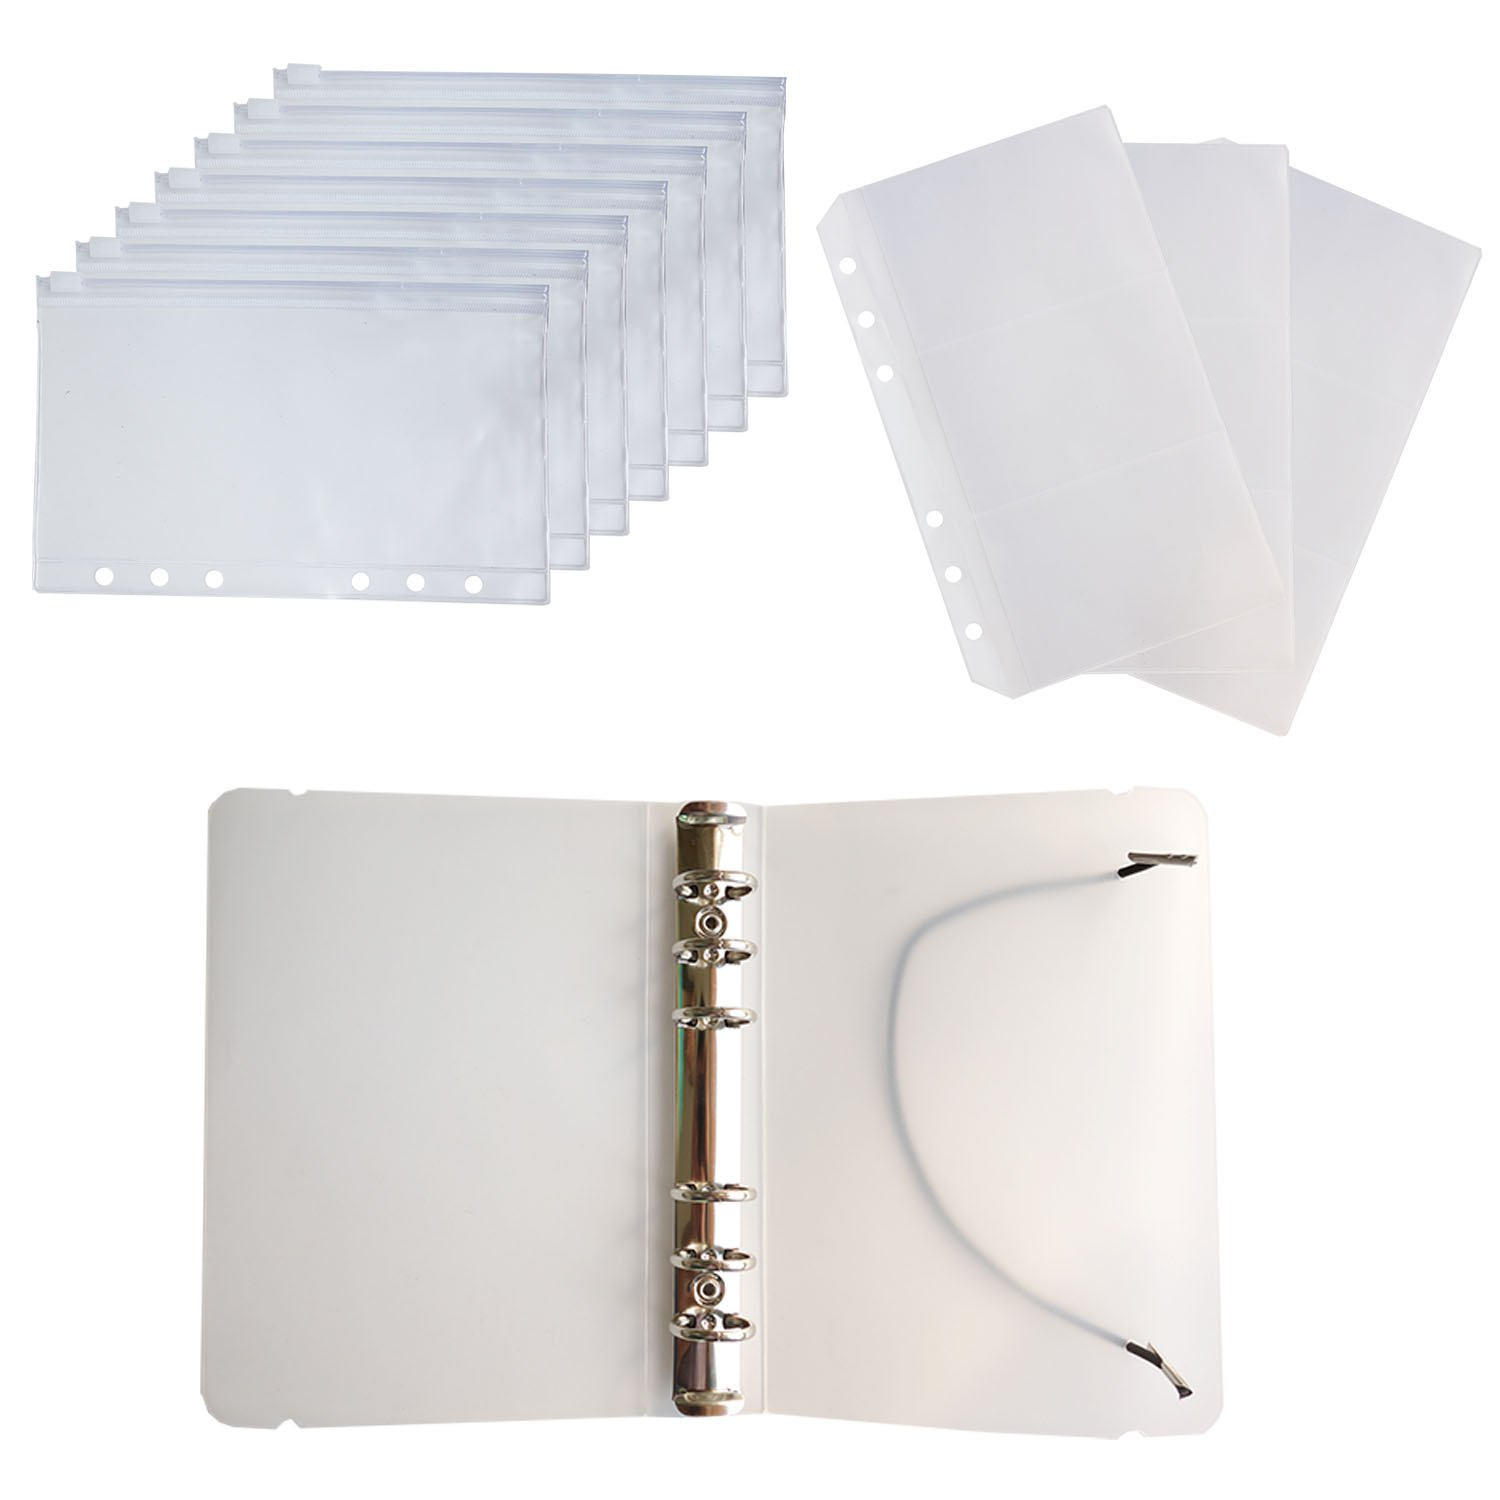 D-worthy 7 pcs Translucent Plastic A6 Size Ziplock Envelope Case Bill Pouch 3 pcs Pockets Name Card Bag with 1pcs 6 Hole Round Ring Binder Cover